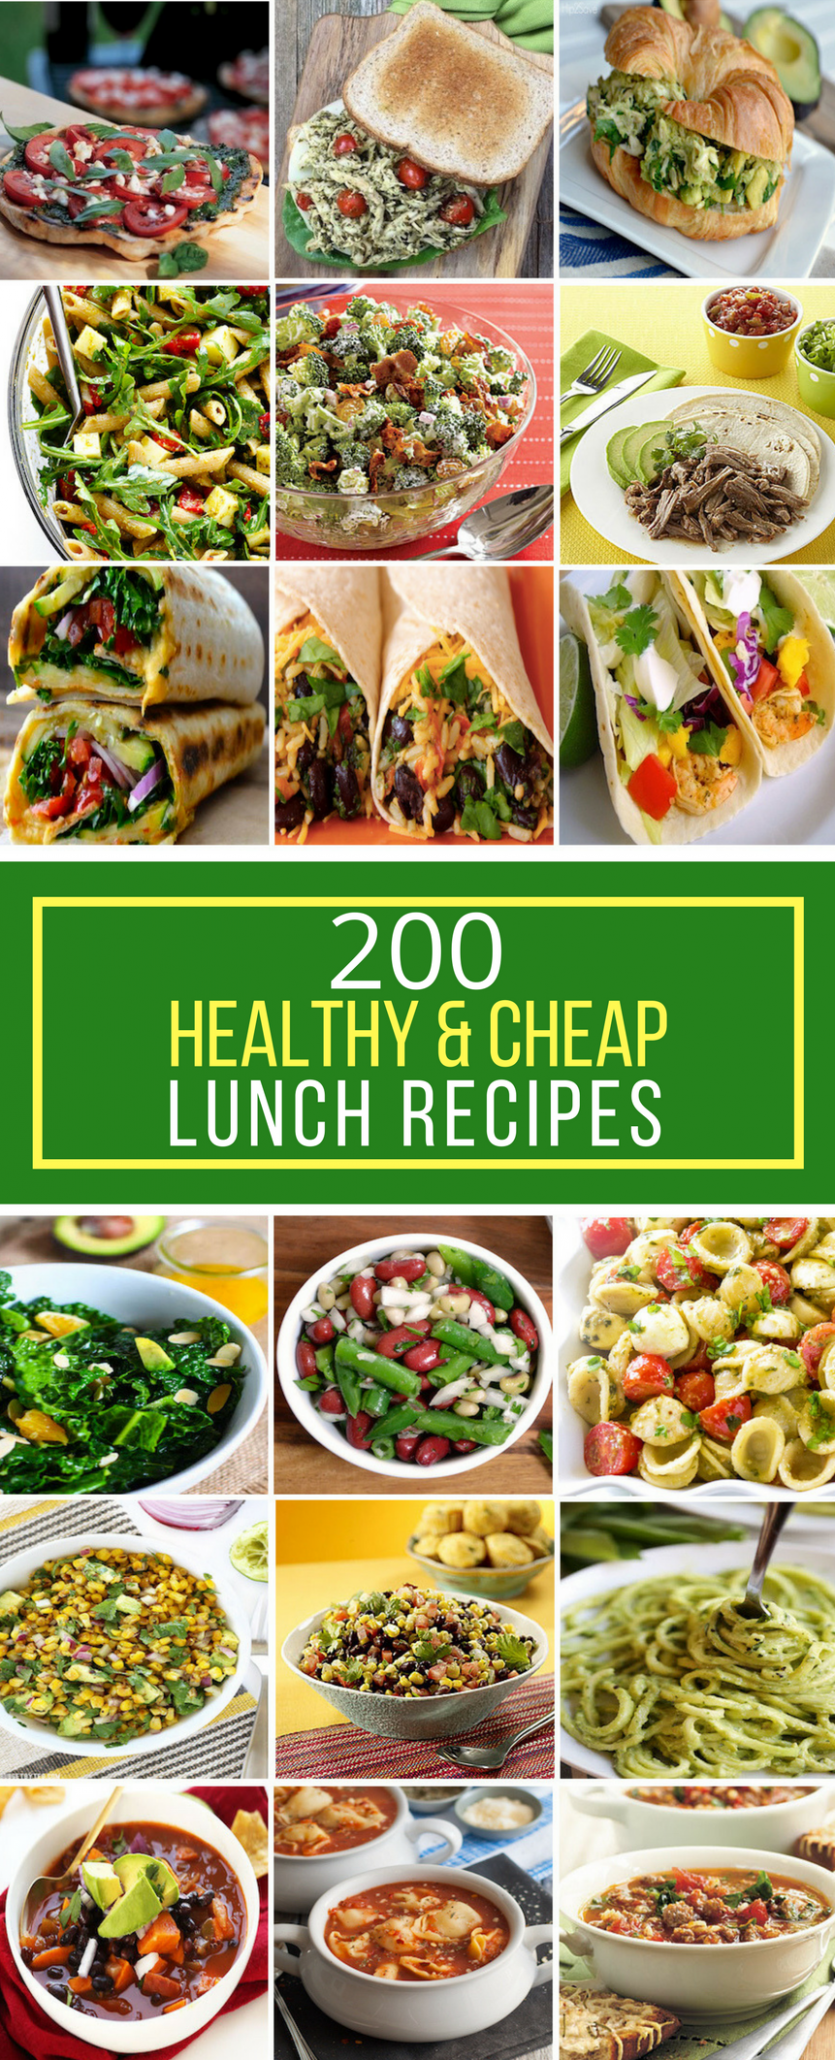 12 Healthy & Cheap Lunch Recipes | Cheap healthy dinners, Cheap ..